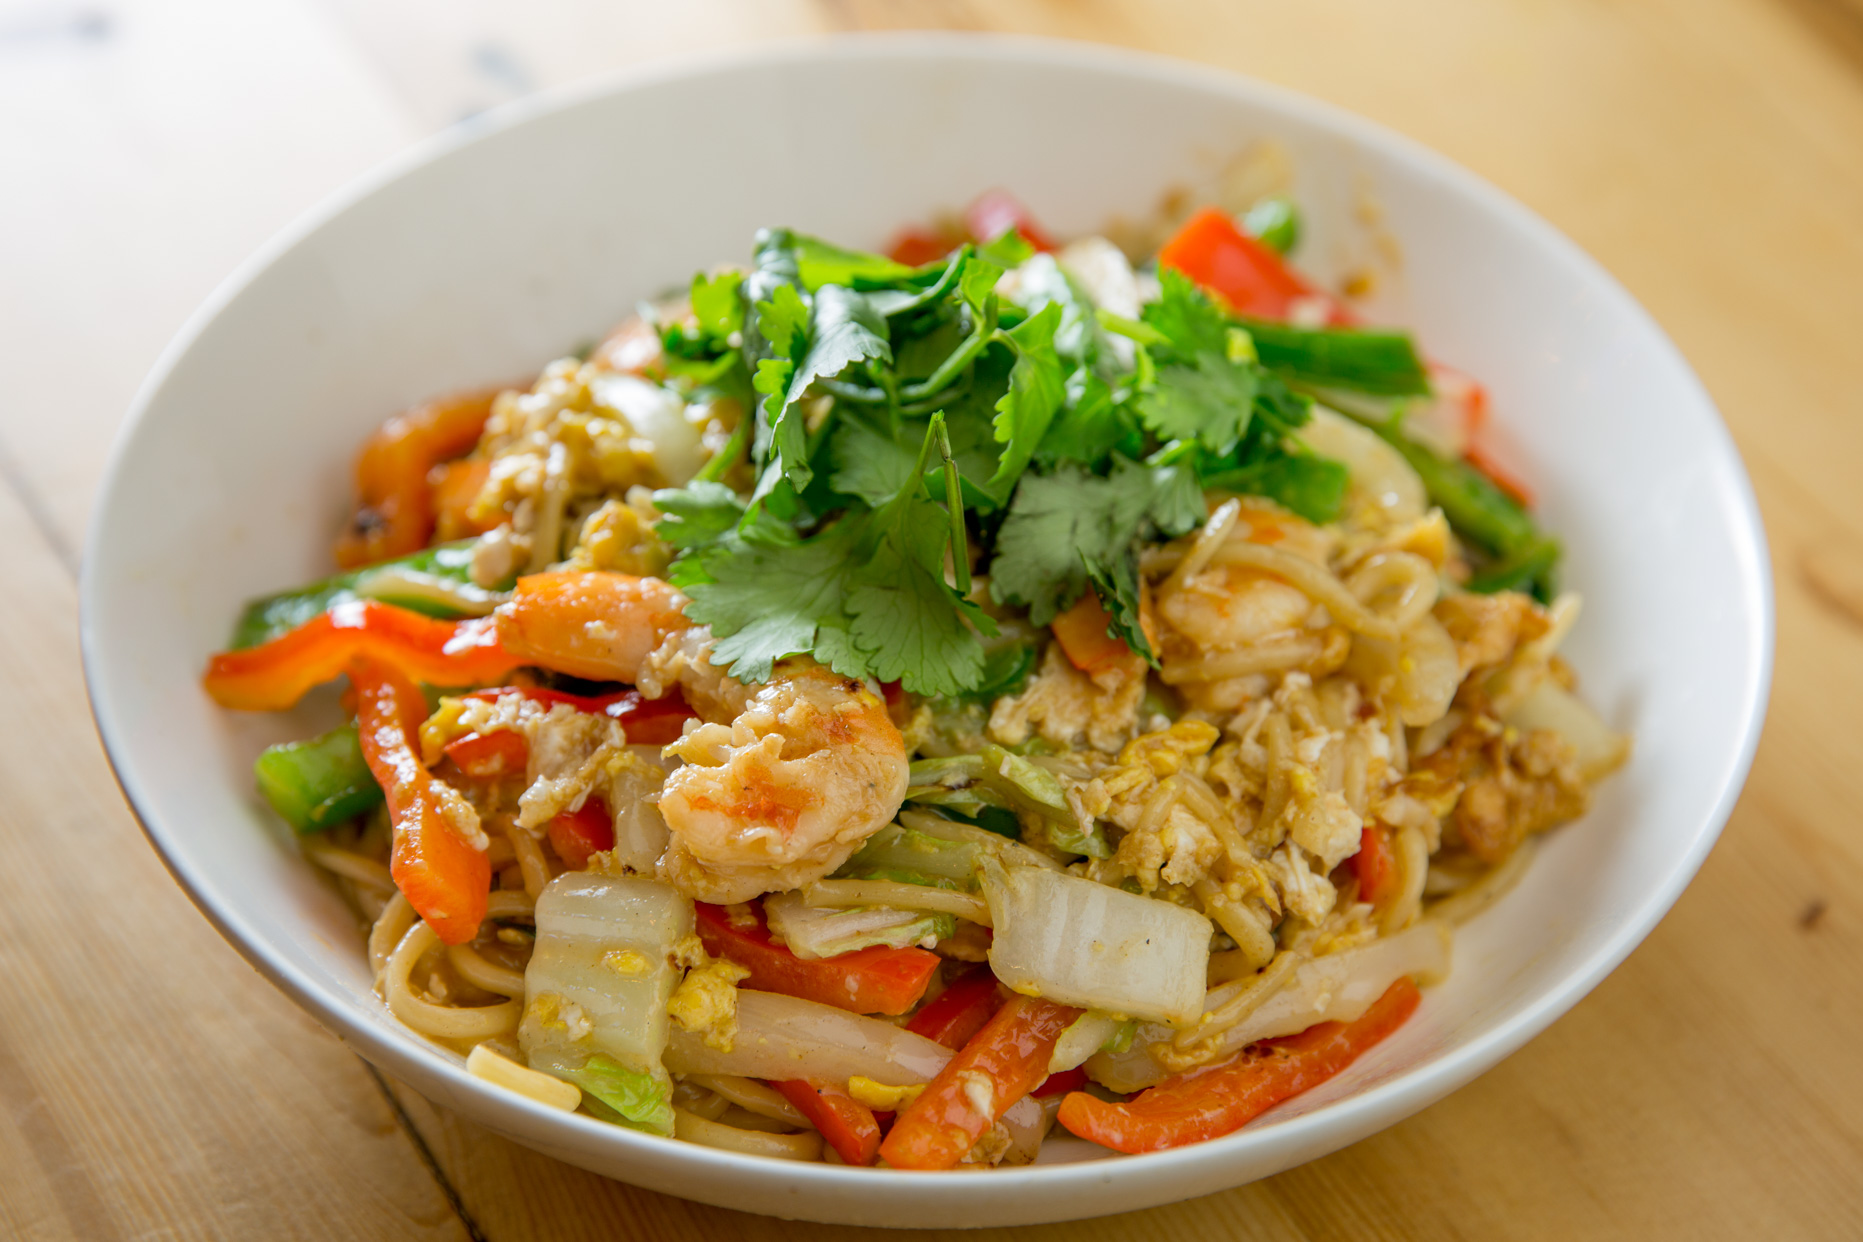 Fried Hand Noodle with Shrimp and Vegetables